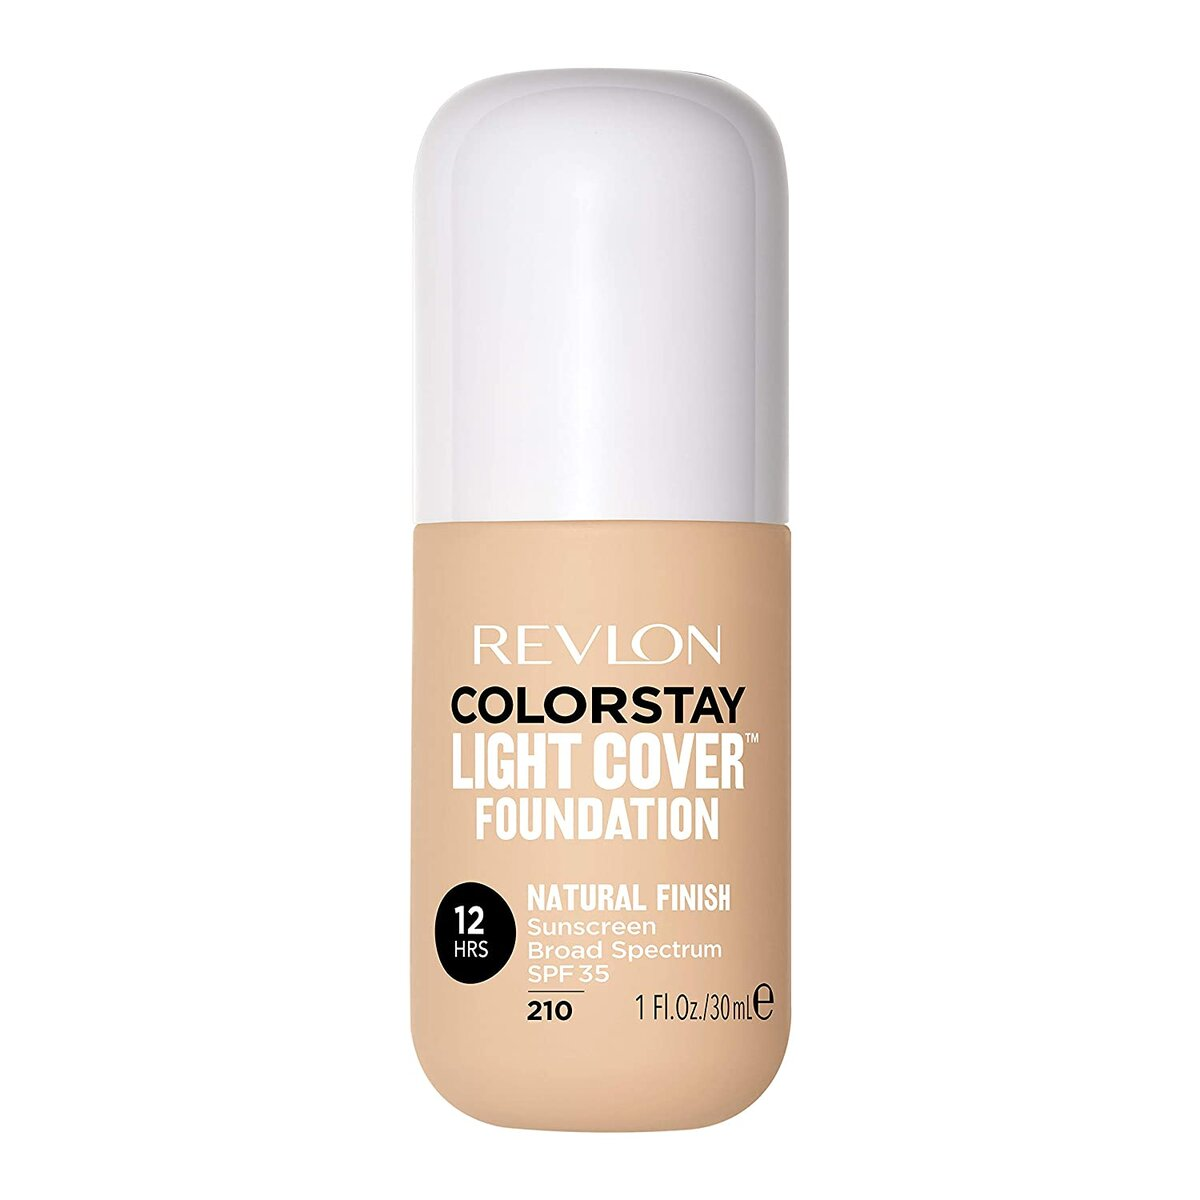 MAQUILLAJE COLORSTAY LIGHT COVER FOUNDATION CREME BRULEE - REVLON